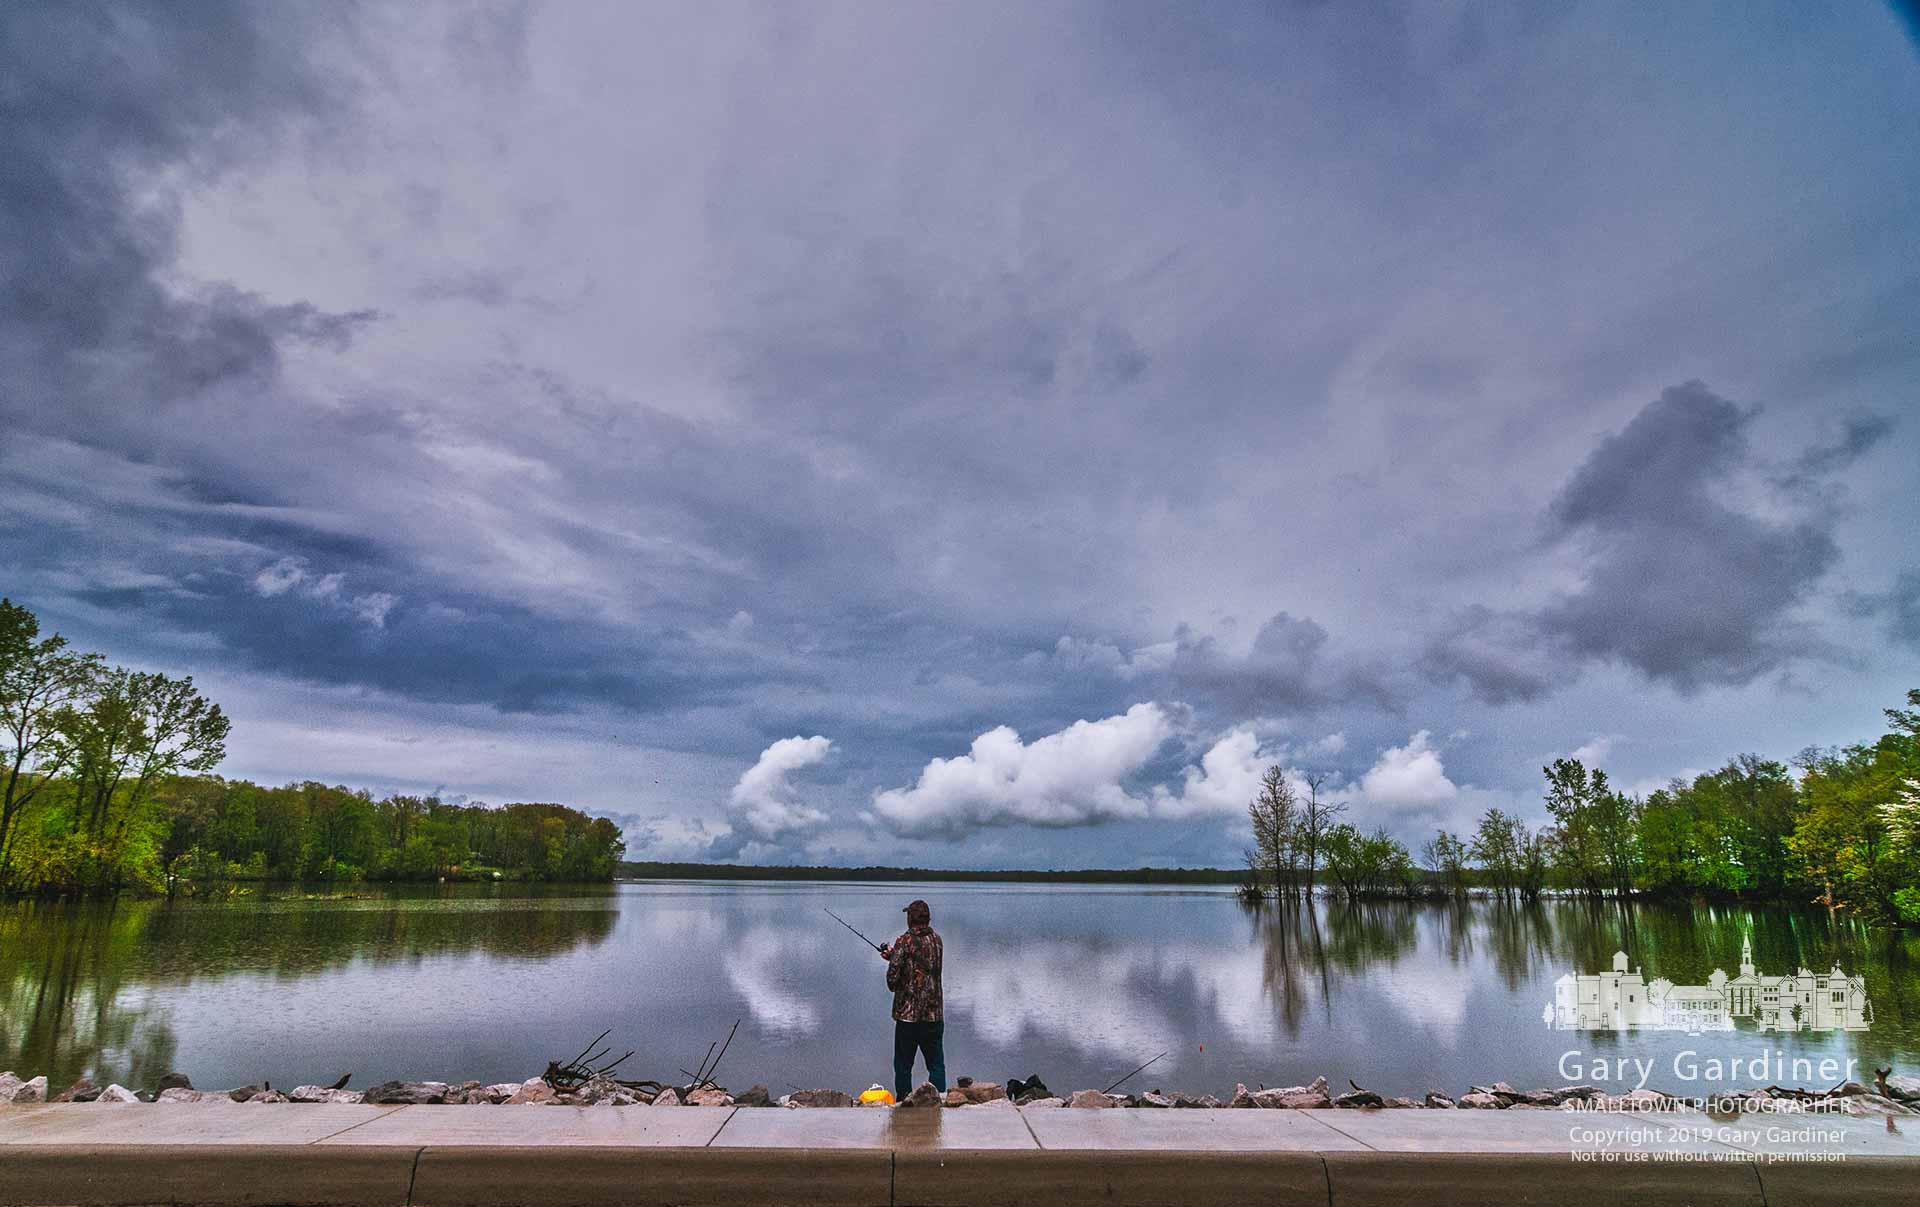 Great Day For Fishing - A fisherman casts into the waters of Hoover Reservoir on a rainy afternoon that saw few people other than those hoping for fish for dinner braving the elements at the lake. My Final Photo for May 3, 2019.